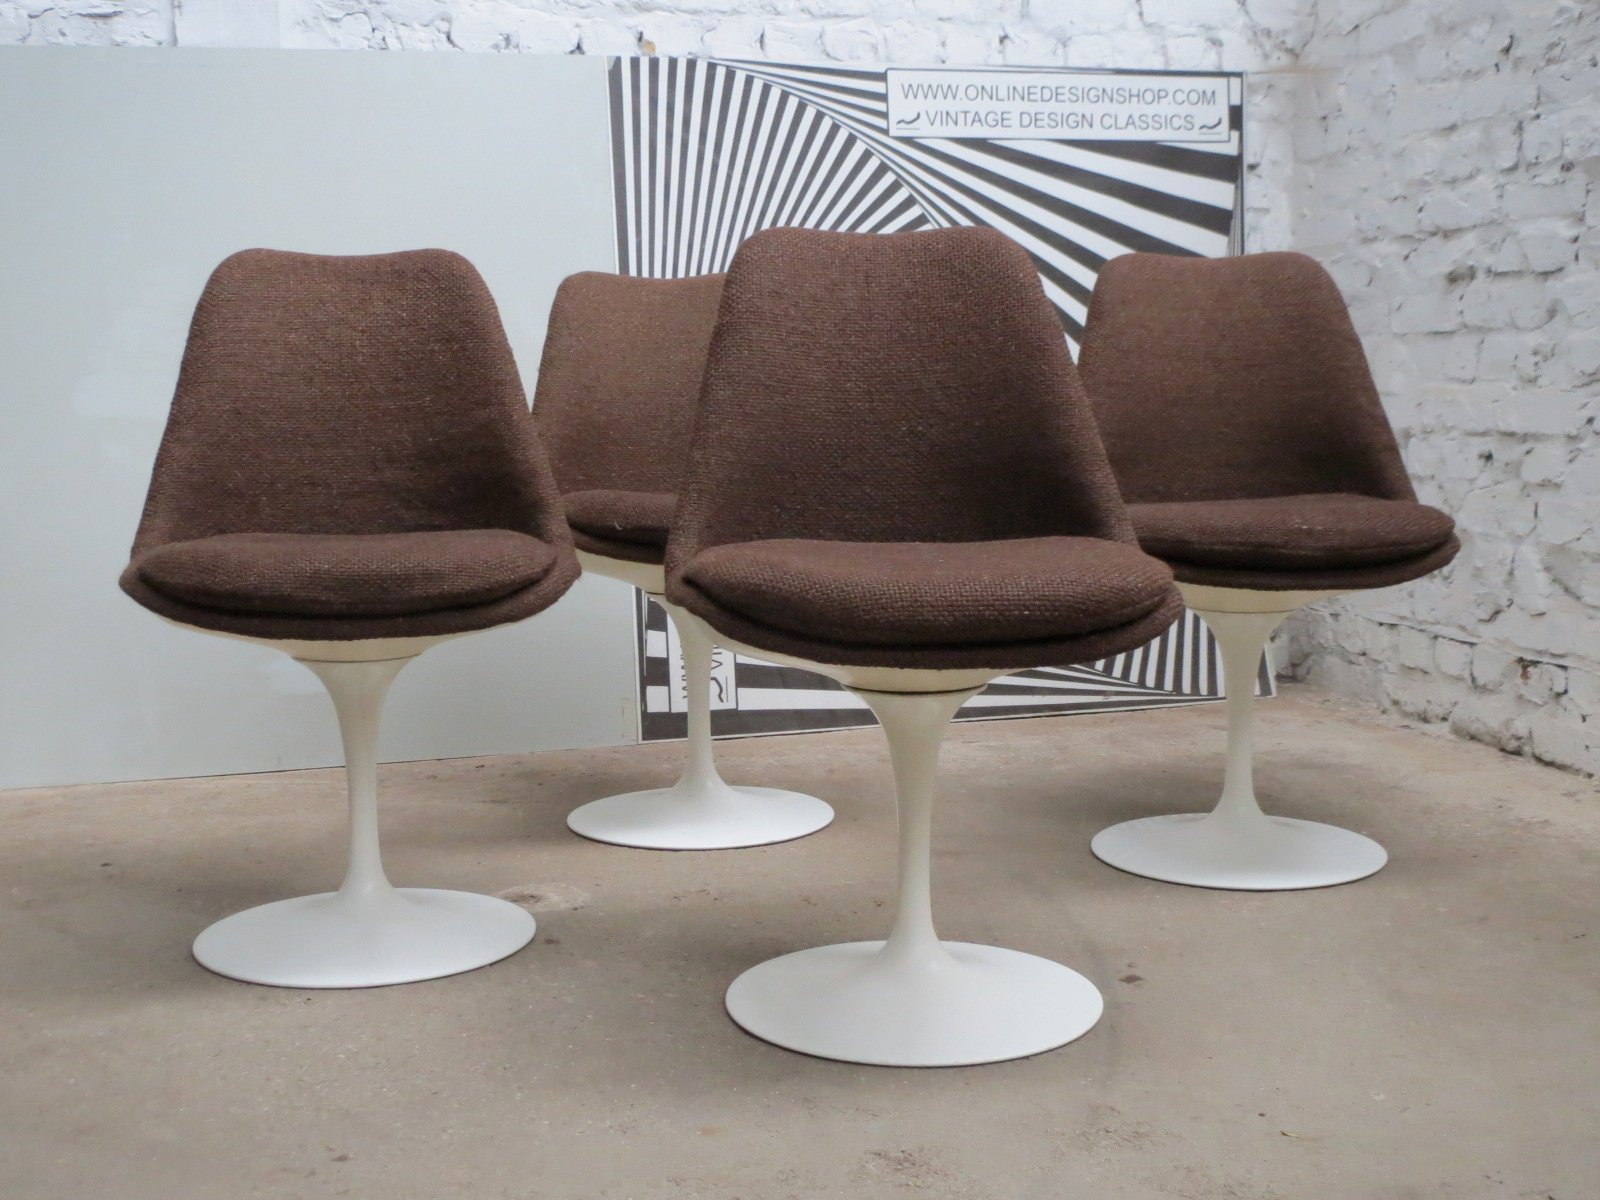 Swivel tulip chairs by eero saarinen for knoll for Eero saarinen tulip armchair